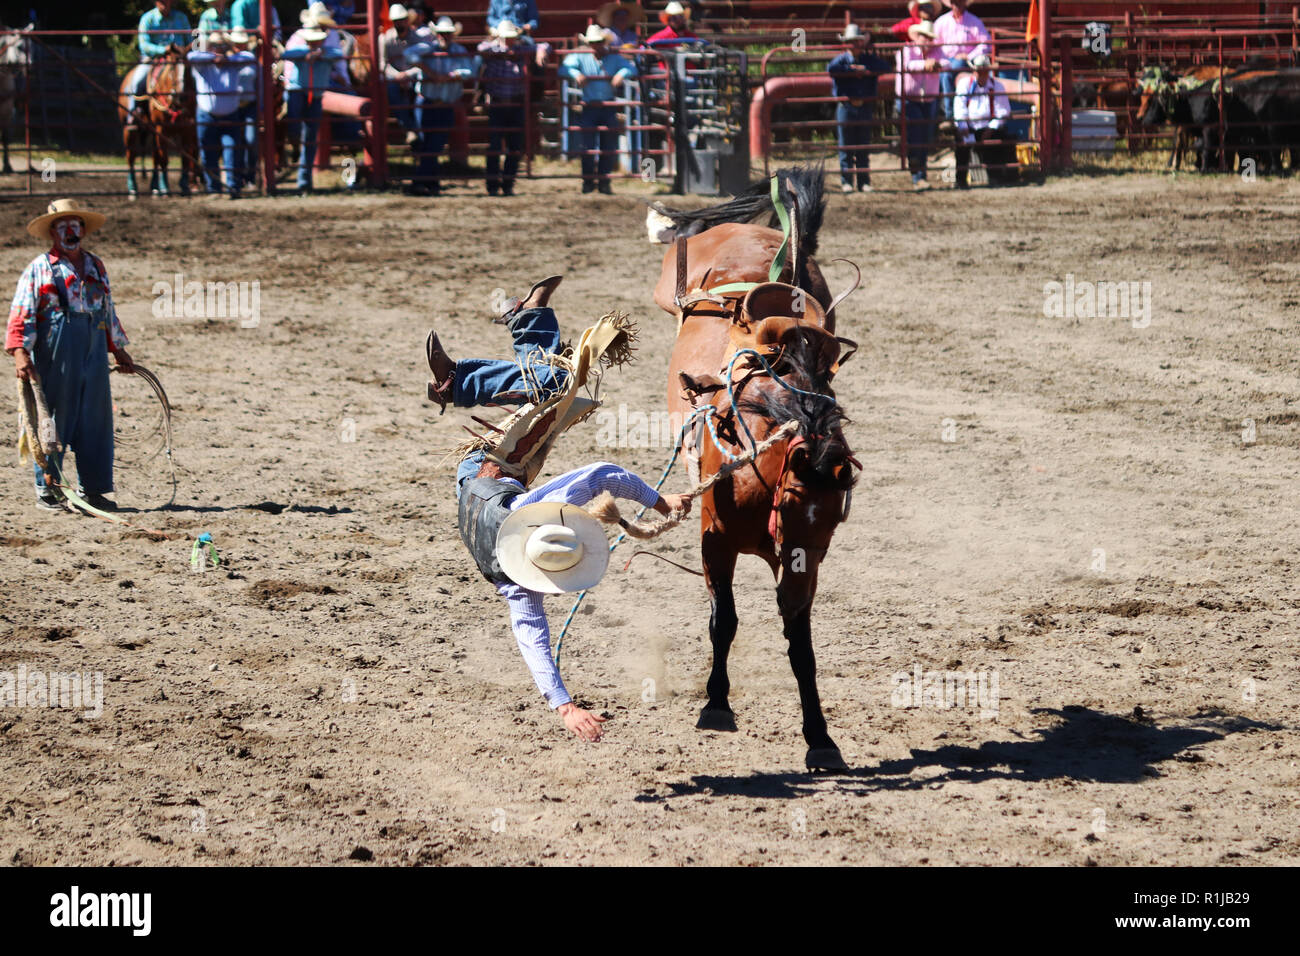 Falling Off Of Horse High Resolution Stock Photography And Images Alamy